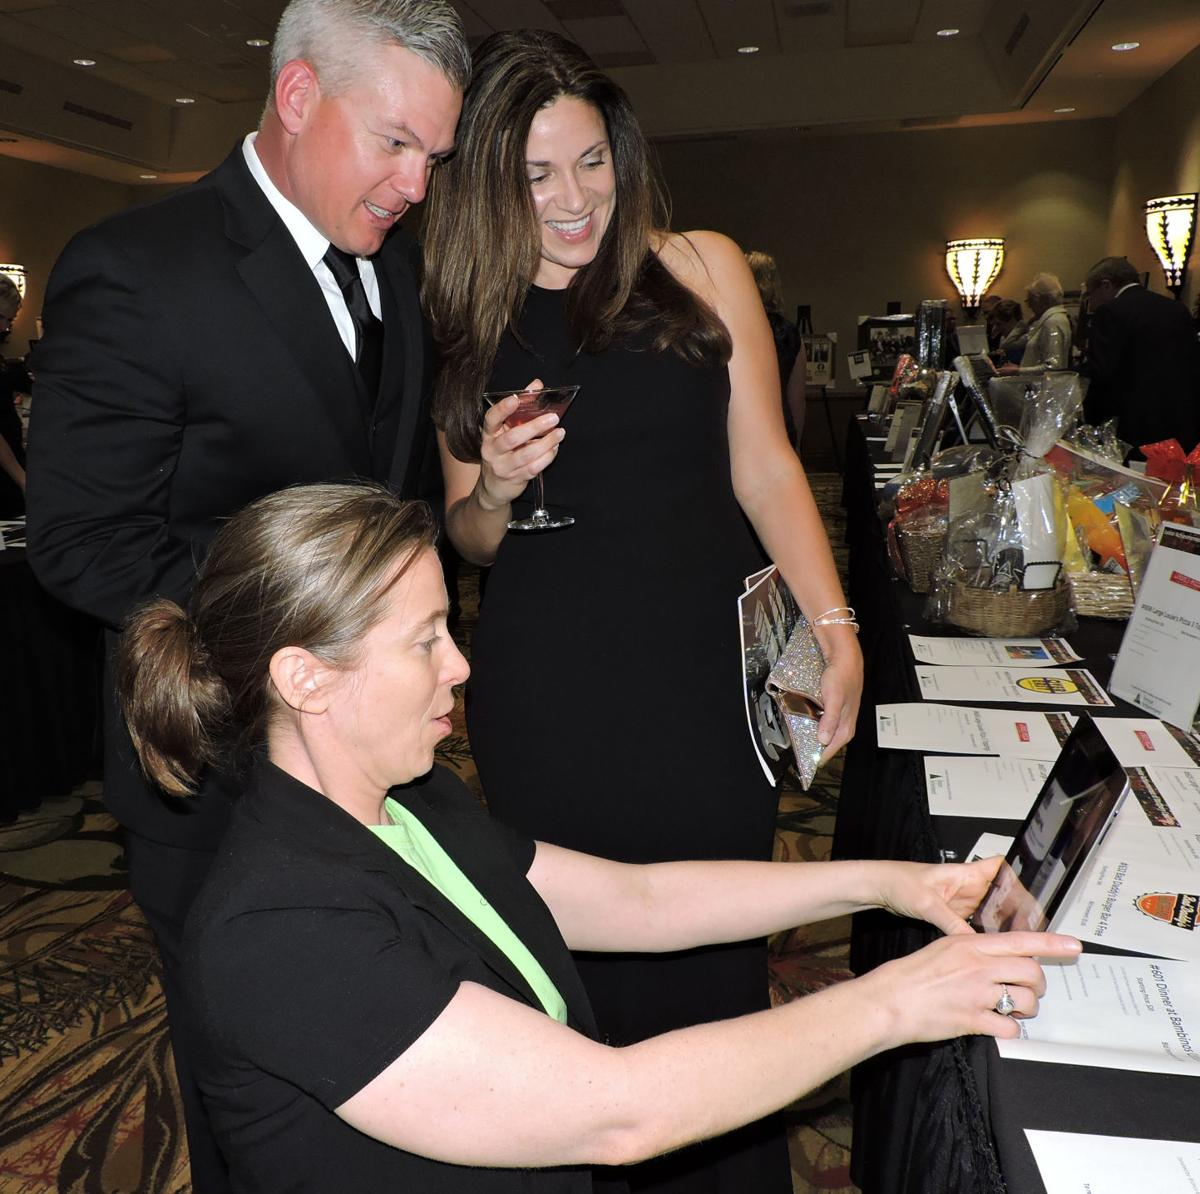 Junior Achievement 25th annual gala: Tara McGowan shows the real-life criminals on the 19 Crimes Australian wine labels to Angela Micheletti and Aaron Anderson. 050518 Photo by Linda Navarro